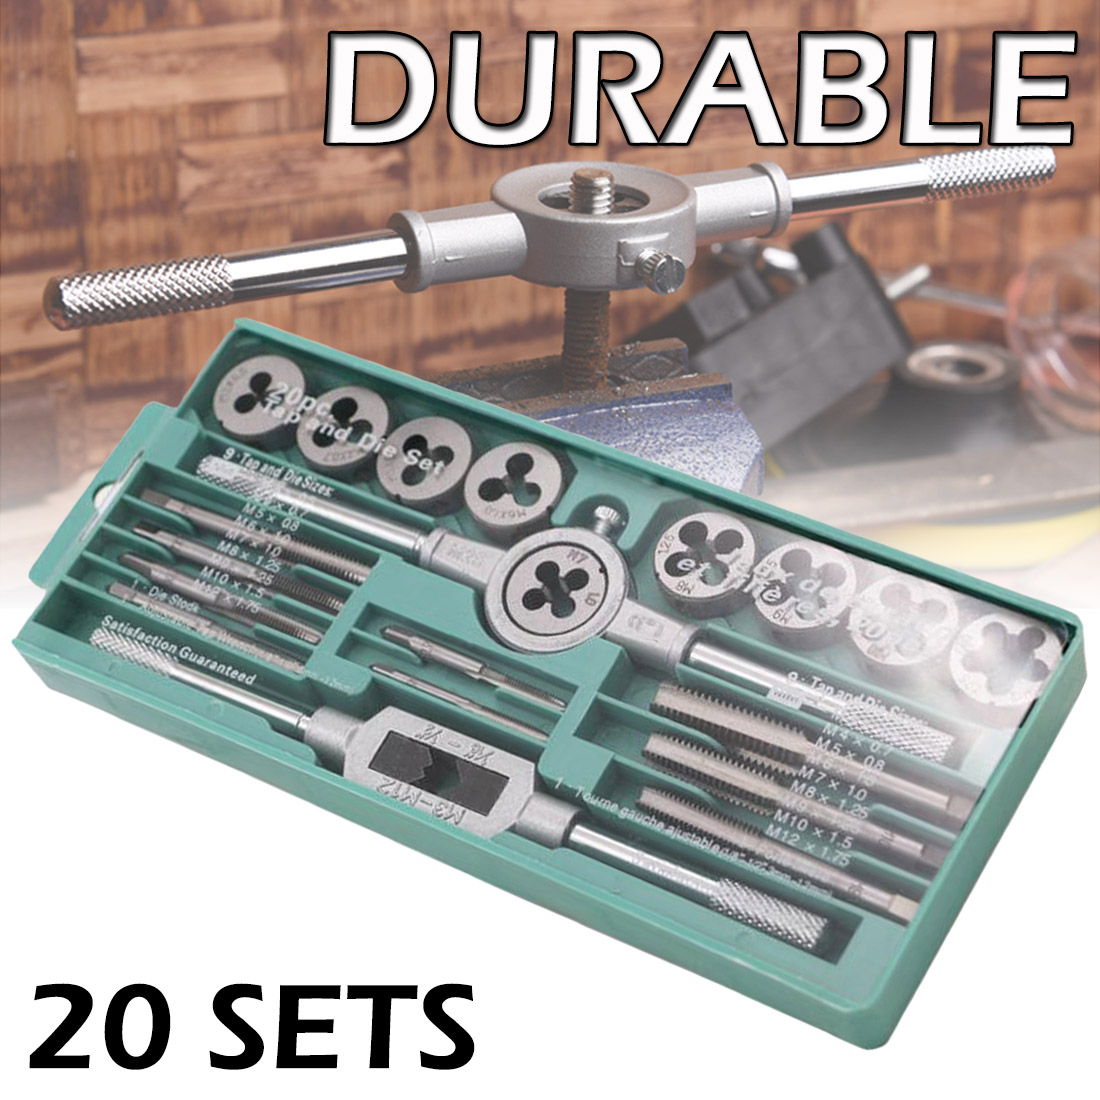 20pcs Alloy Steel Hand Screw Tap Die Set 1/16 - 1/2 Inch NC Screw Thread Plugs Taps Wrench Cutting Adjusting Tools